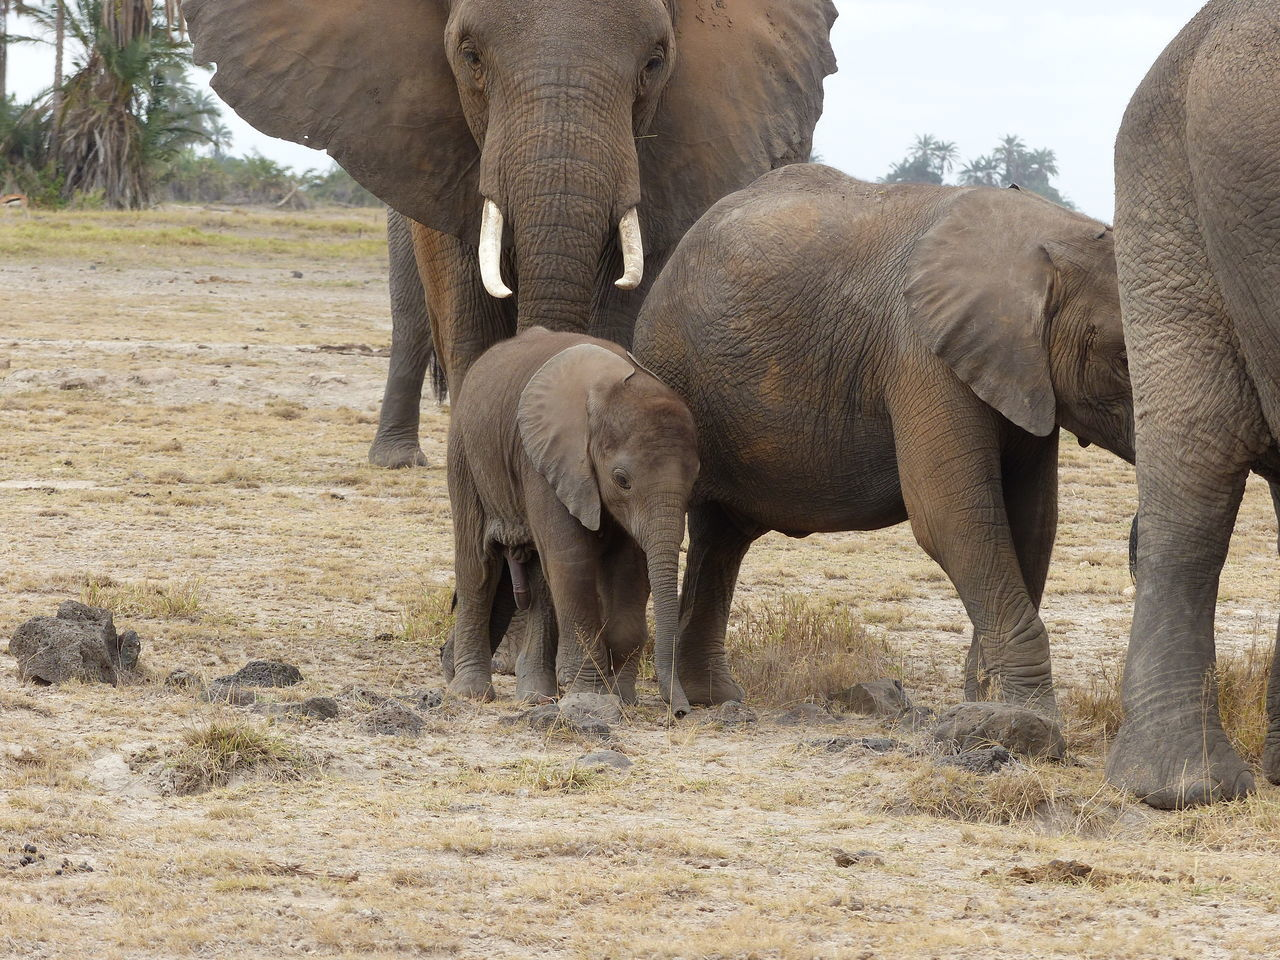 animals in the wild, elephant, animal themes, mammal, young animal, animal wildlife, safari animals, day, togetherness, animal family, field, african elephant, nature, elephant calf, no people, outdoors, landscape, tusk, grass, tree, animal trunk